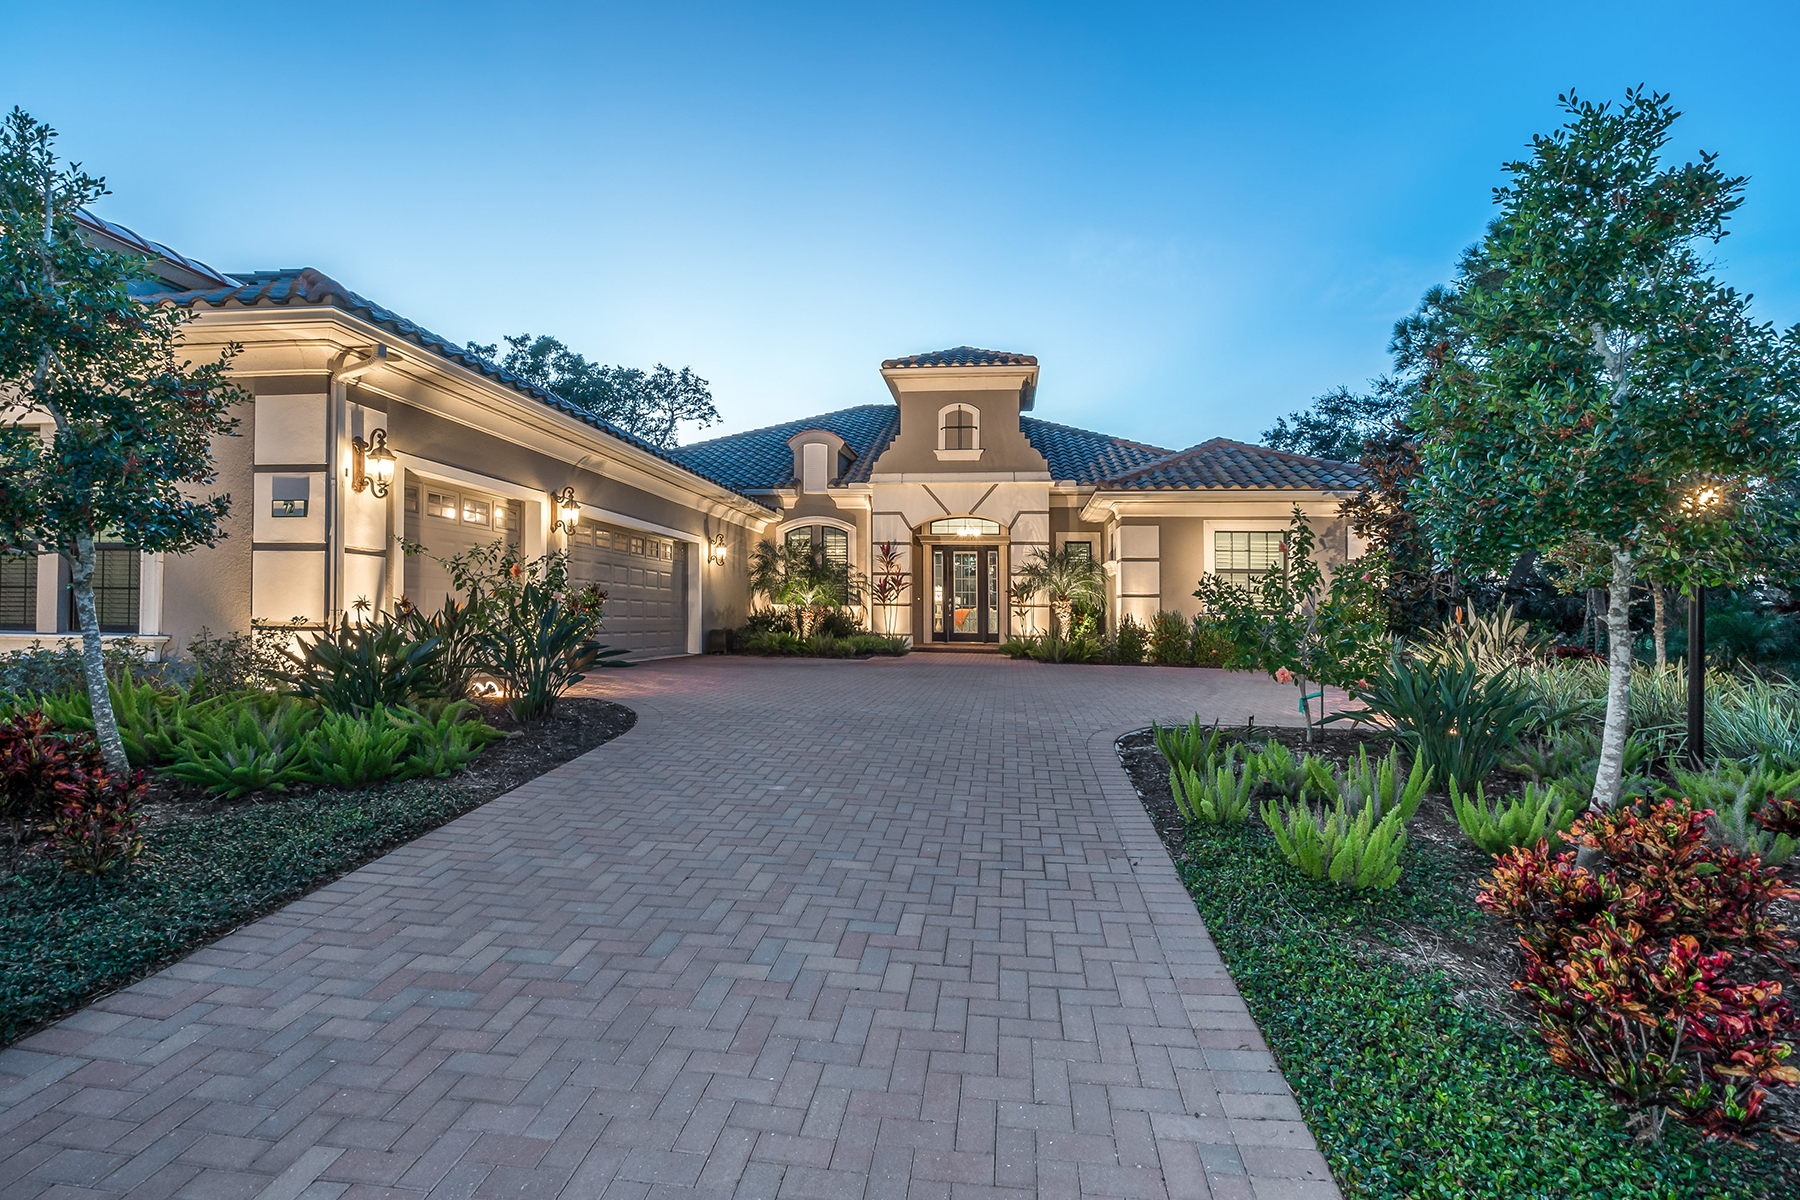 Single Family Home for Sale at BOCA ROYALE 72 Grande Fairway, Englewood, Florida 34223 United States